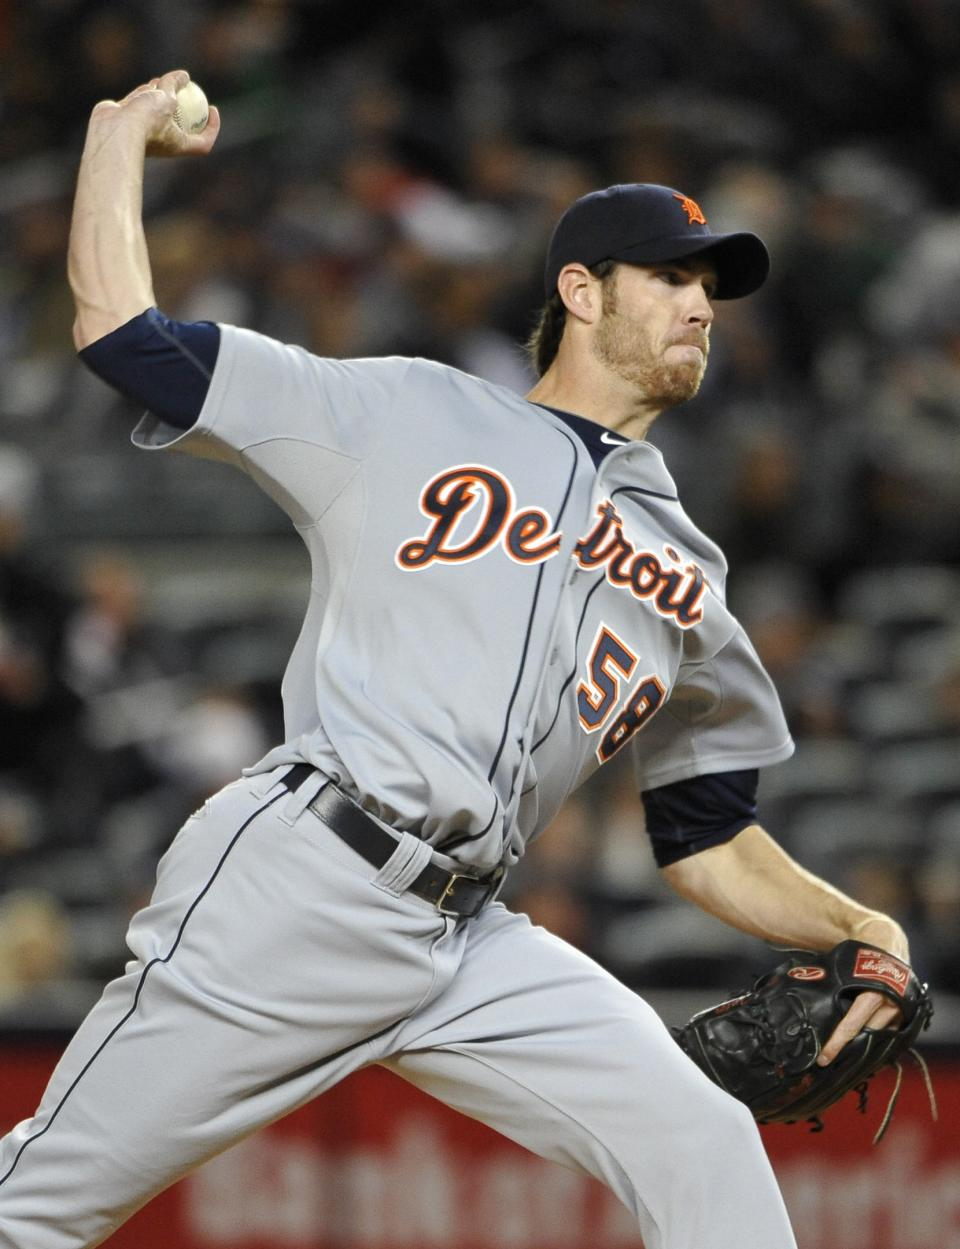 Detroit Tigers pitcher Doug Fister throws to a New York Yankees batter during the continuation of Game 1 of baseball's American League division series on Saturday, Oct. 1, 2011, at Yankee Stadium in New York. (AP Photo/Kathy Kmonicek)